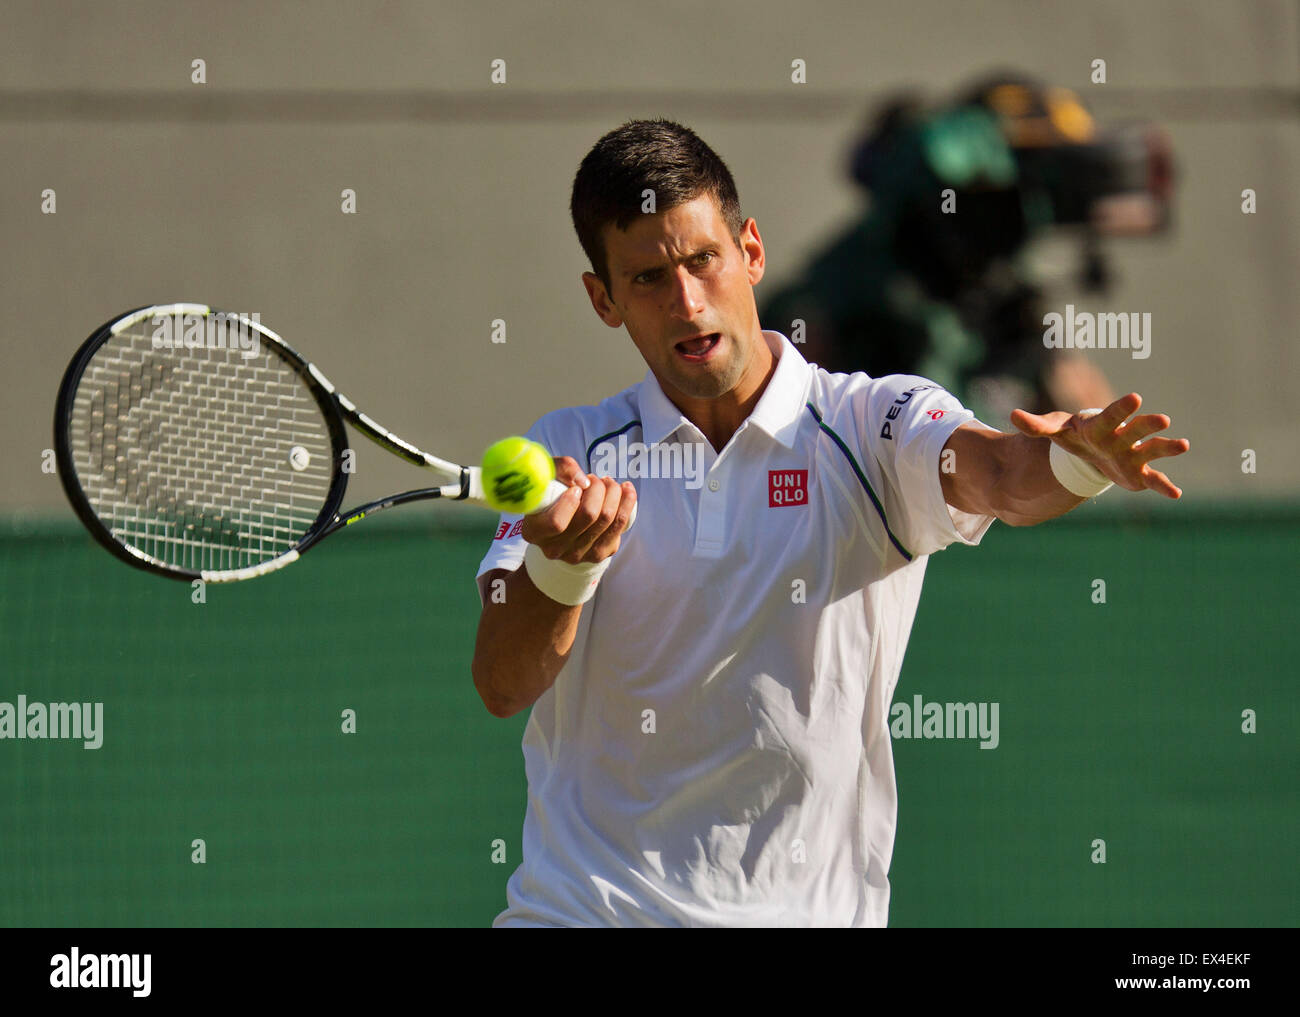 Wimbledon, London, UK. 6th July, 2015. Tennis, Wimbledon, Novak Djokovic (SRB) in his match against Kevin Anderson - Stock Image